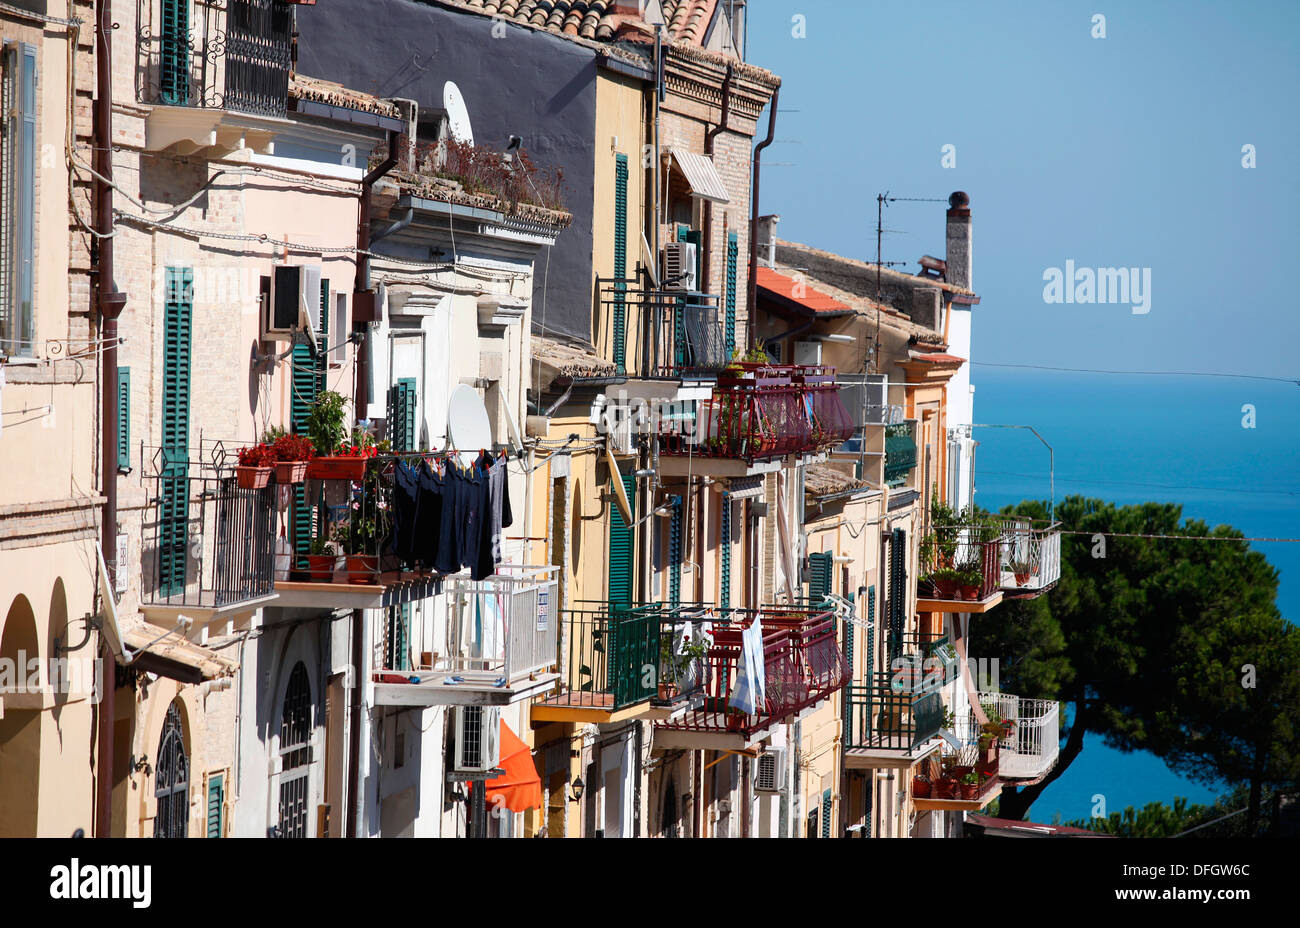 Balconies on a terrace of houses in Vasto, Italy. - Stock Image